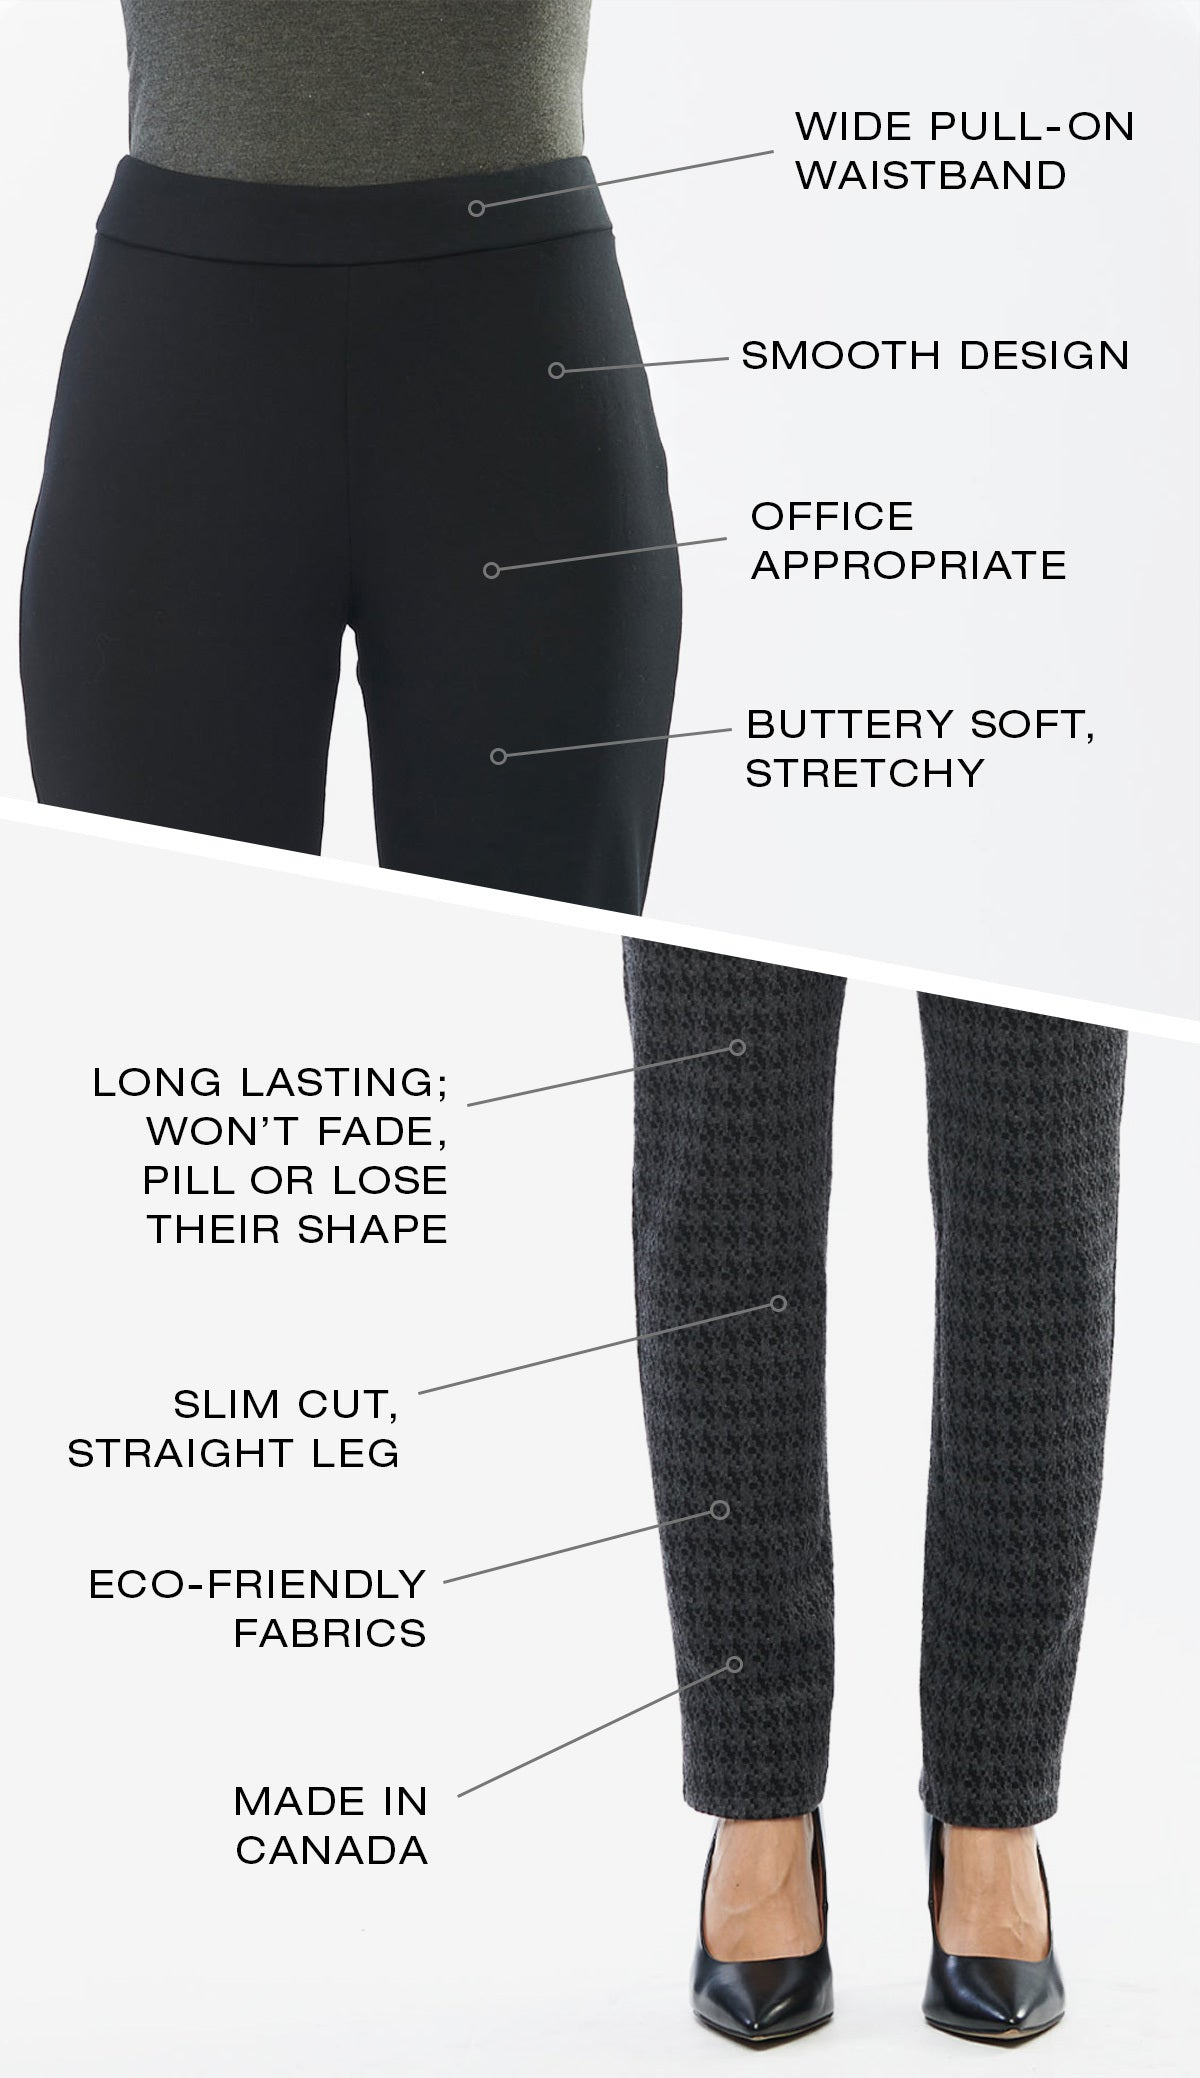 Features of the Avery pant